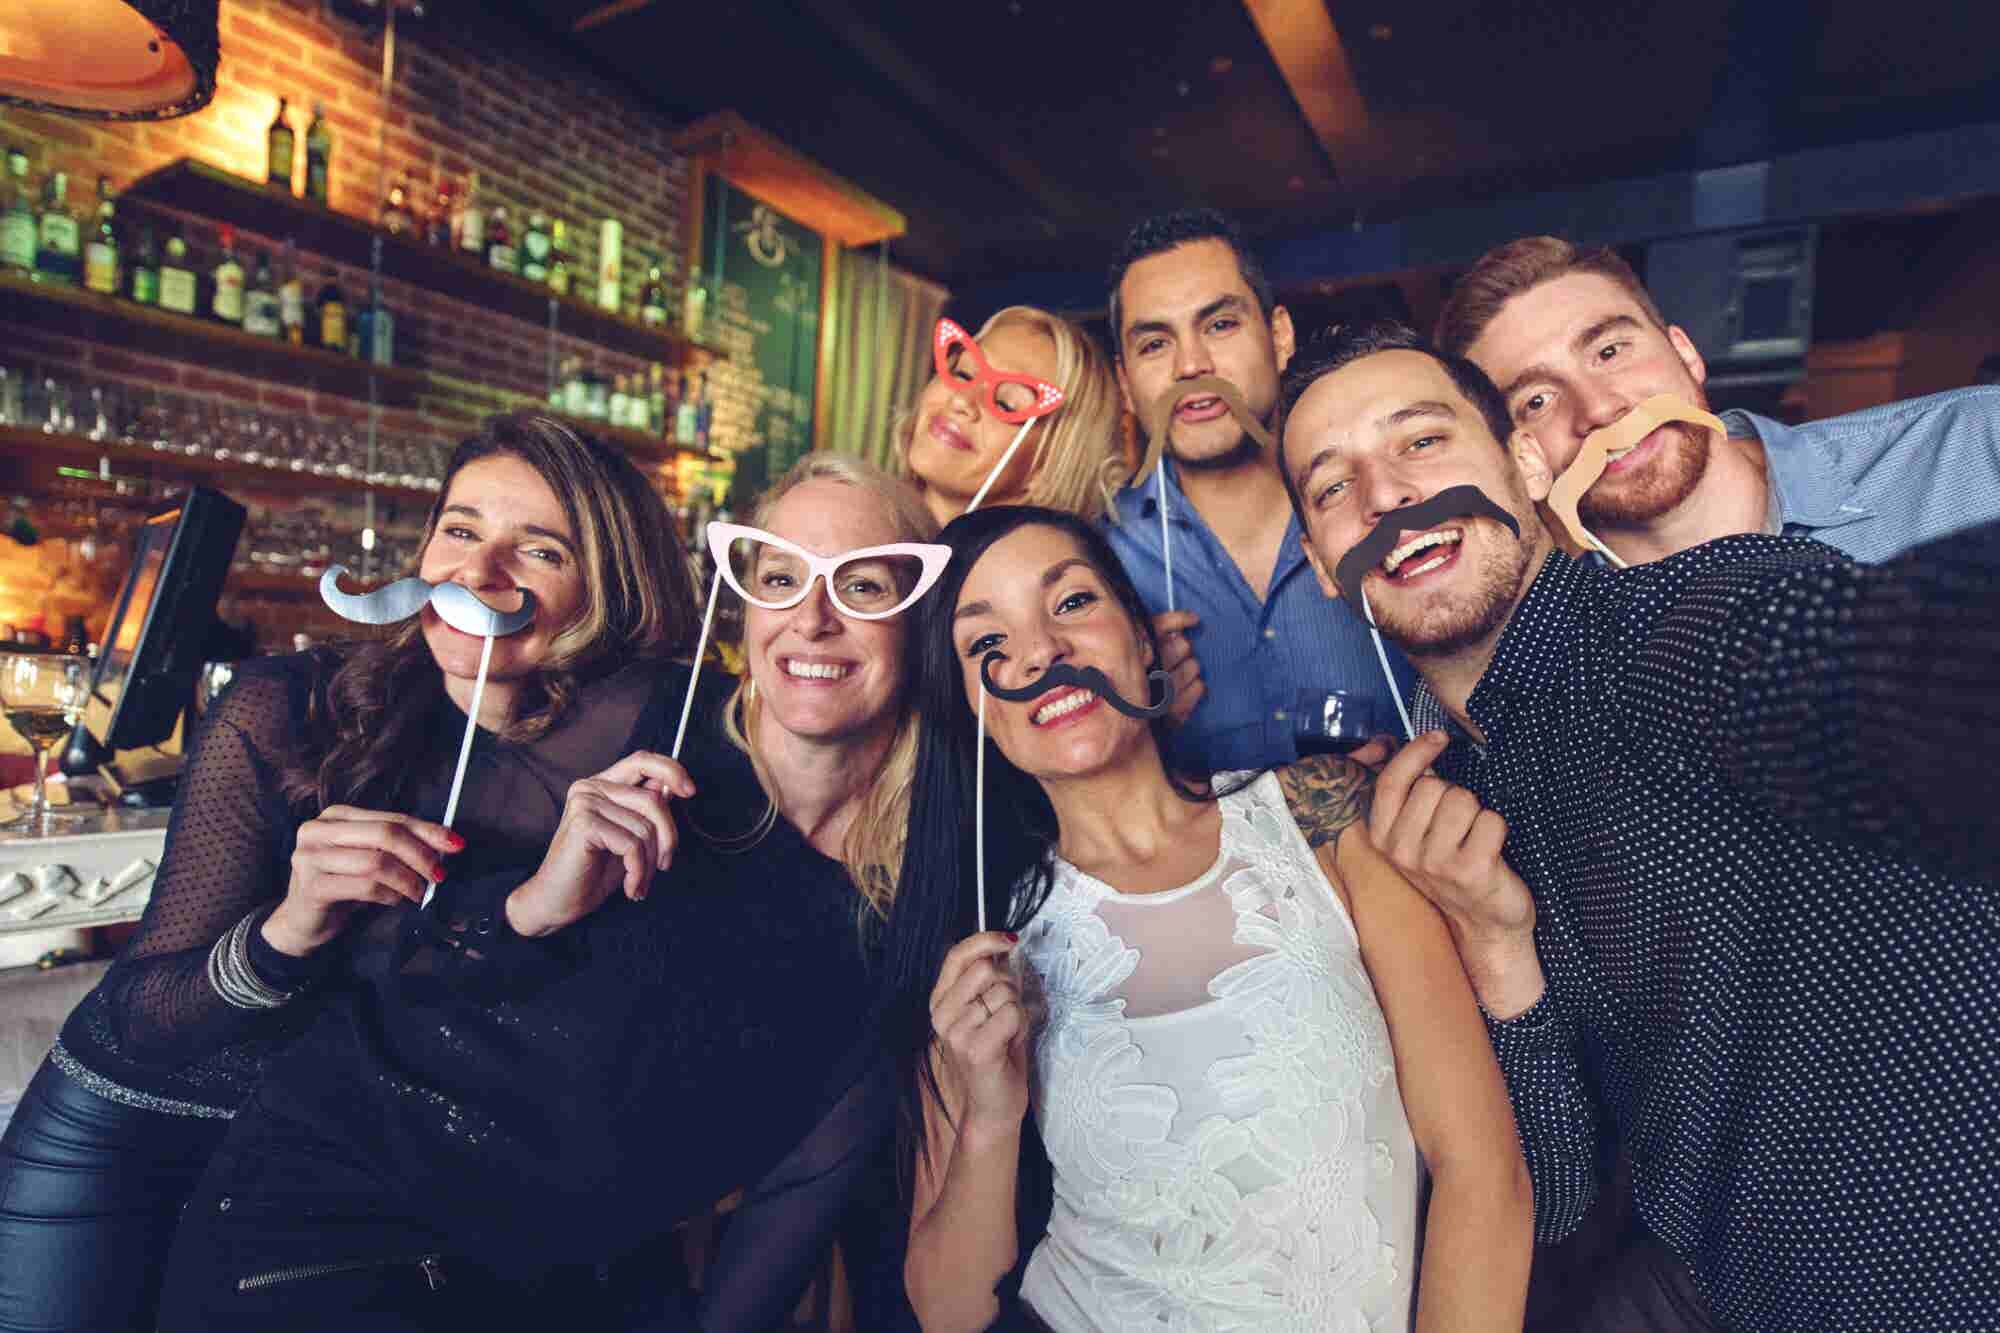 5 Tips to Make Your Employees Feel Appreciated